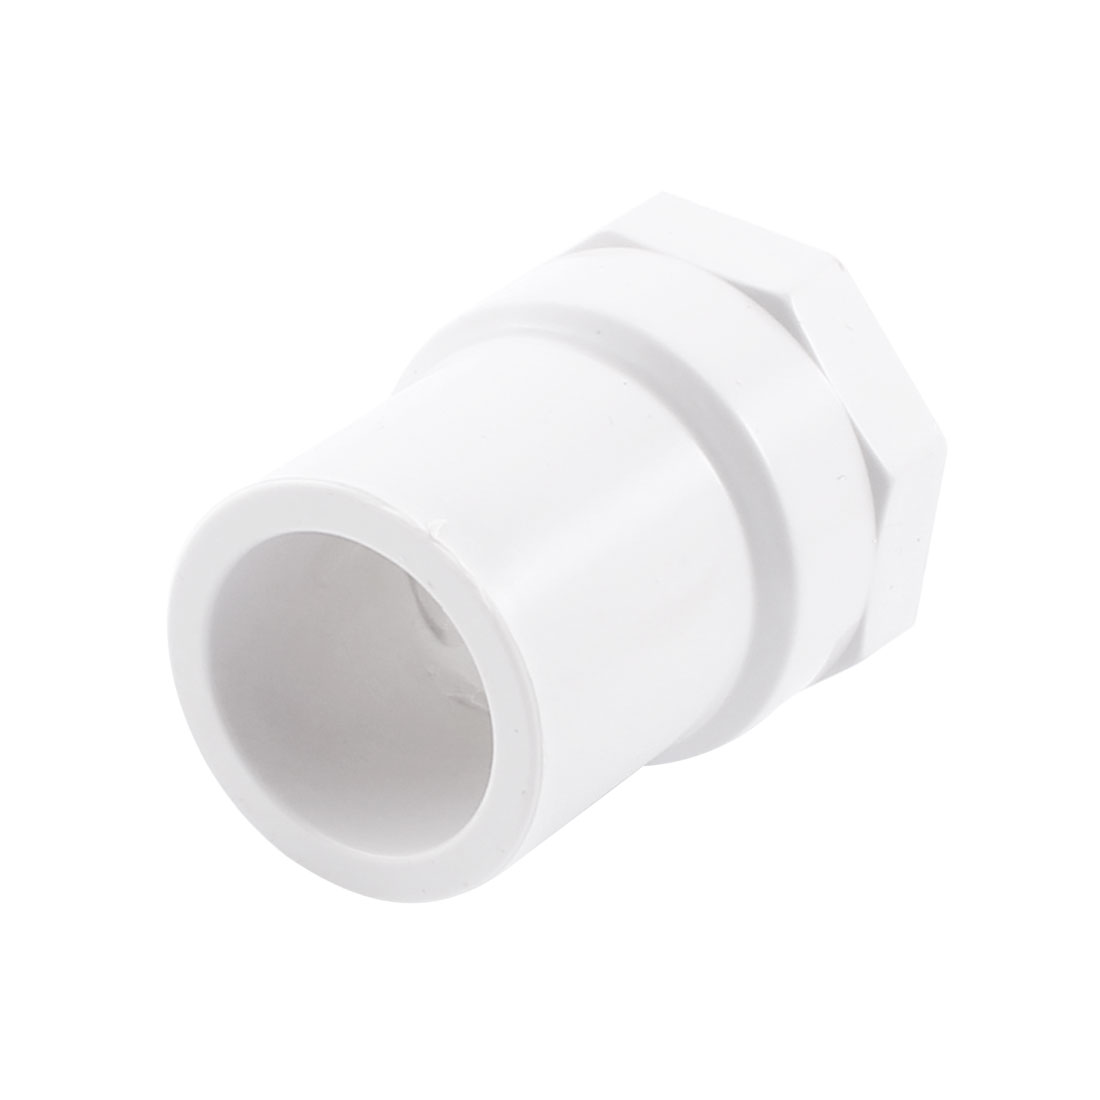 1/2PT Female Thread to 20mm Dia White PVC Water Pipe Quick Fitting Coupling Connector Adapter